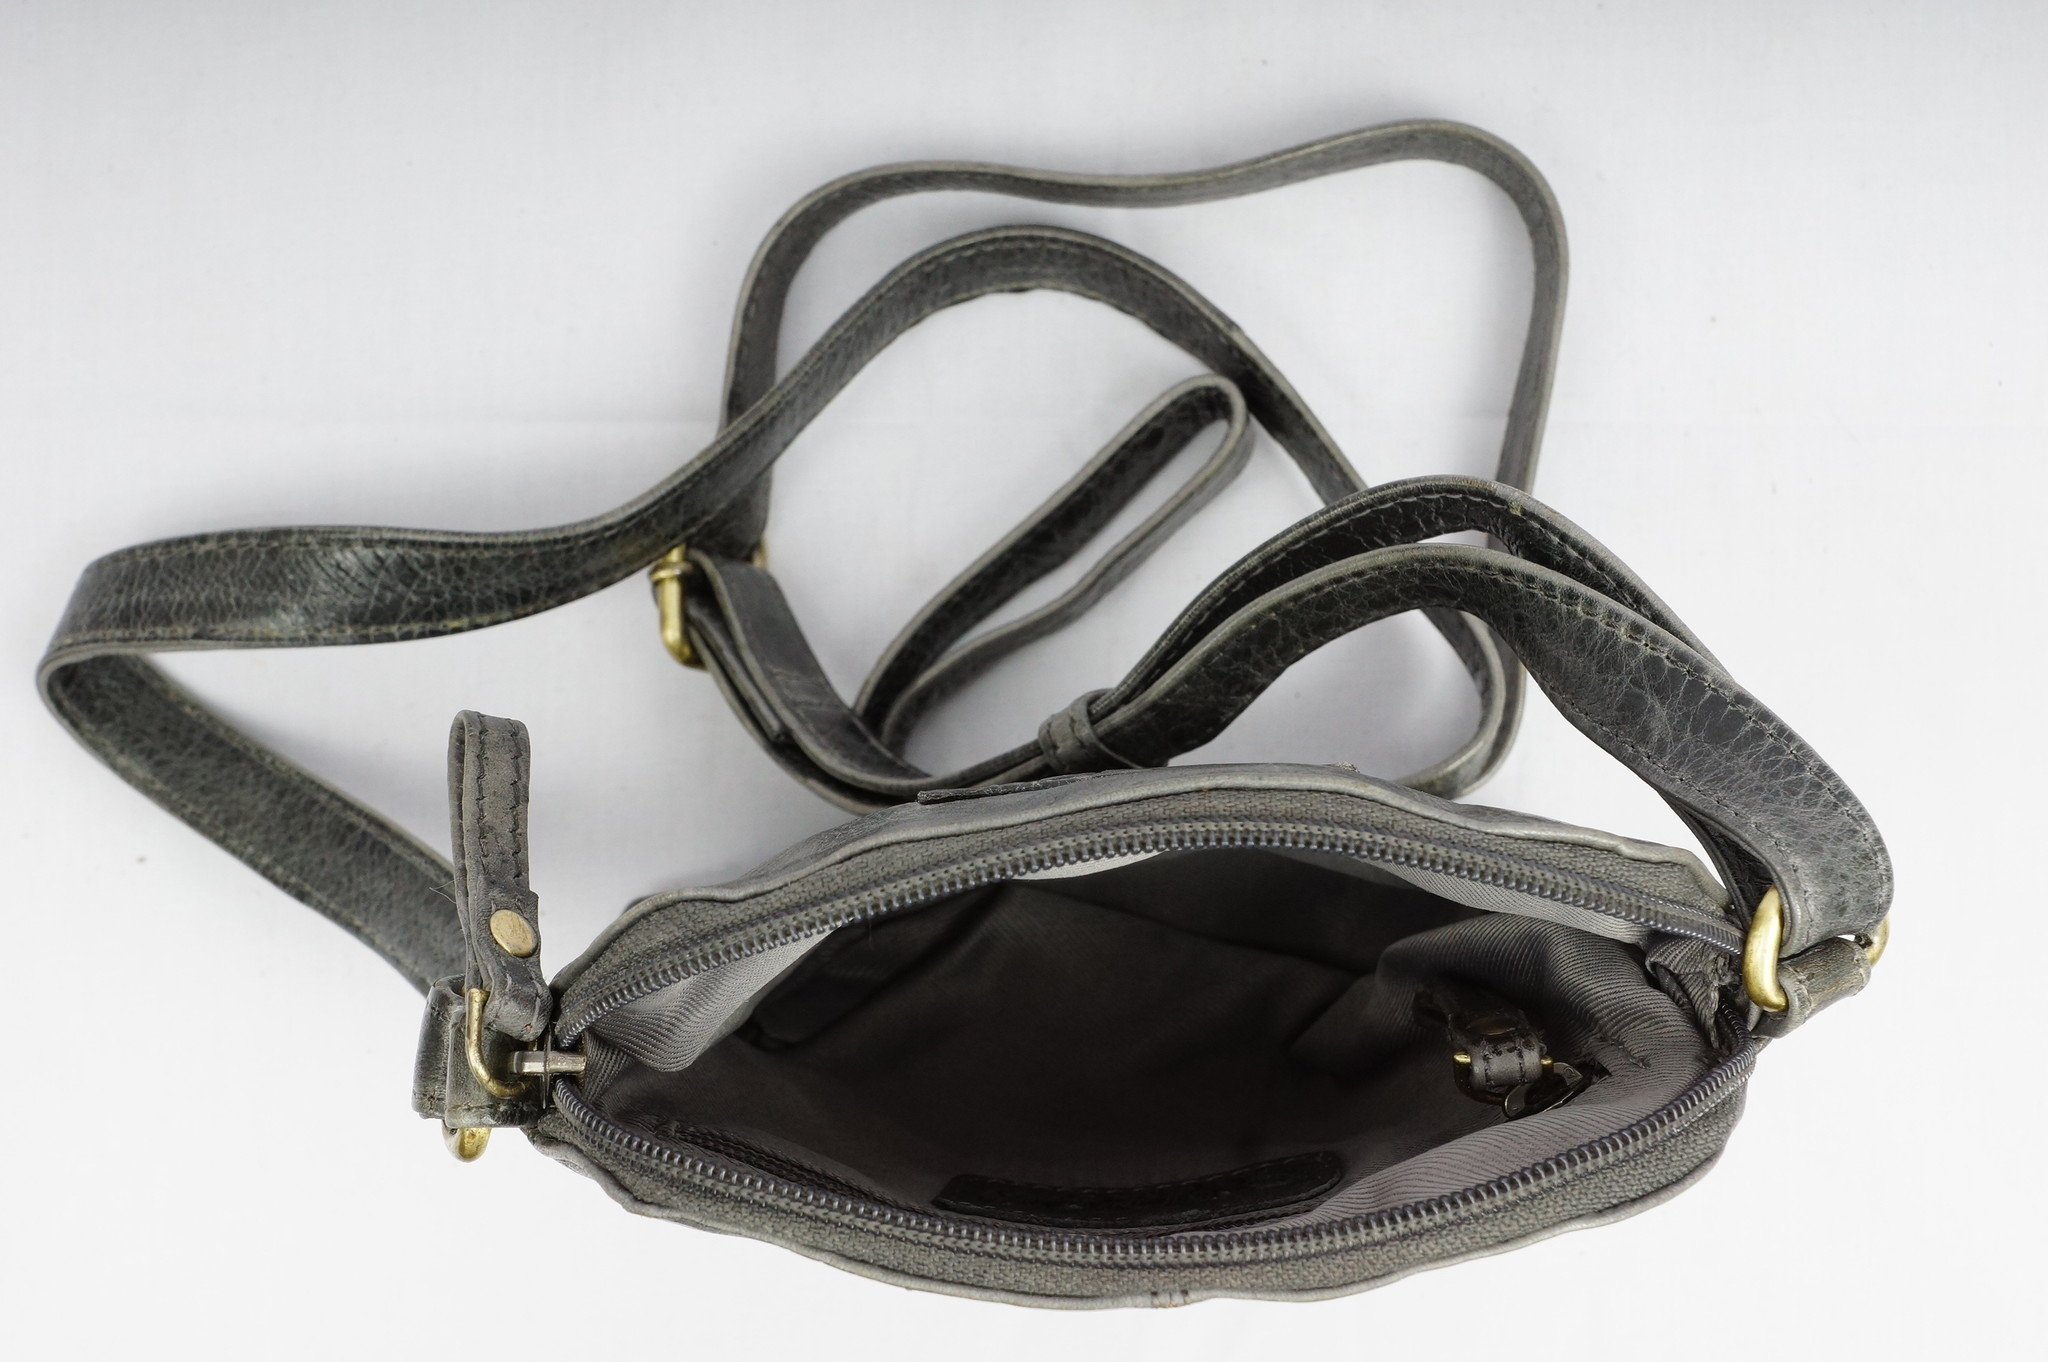 Bizzoo Bizzoo bag small with long shoulder strap black